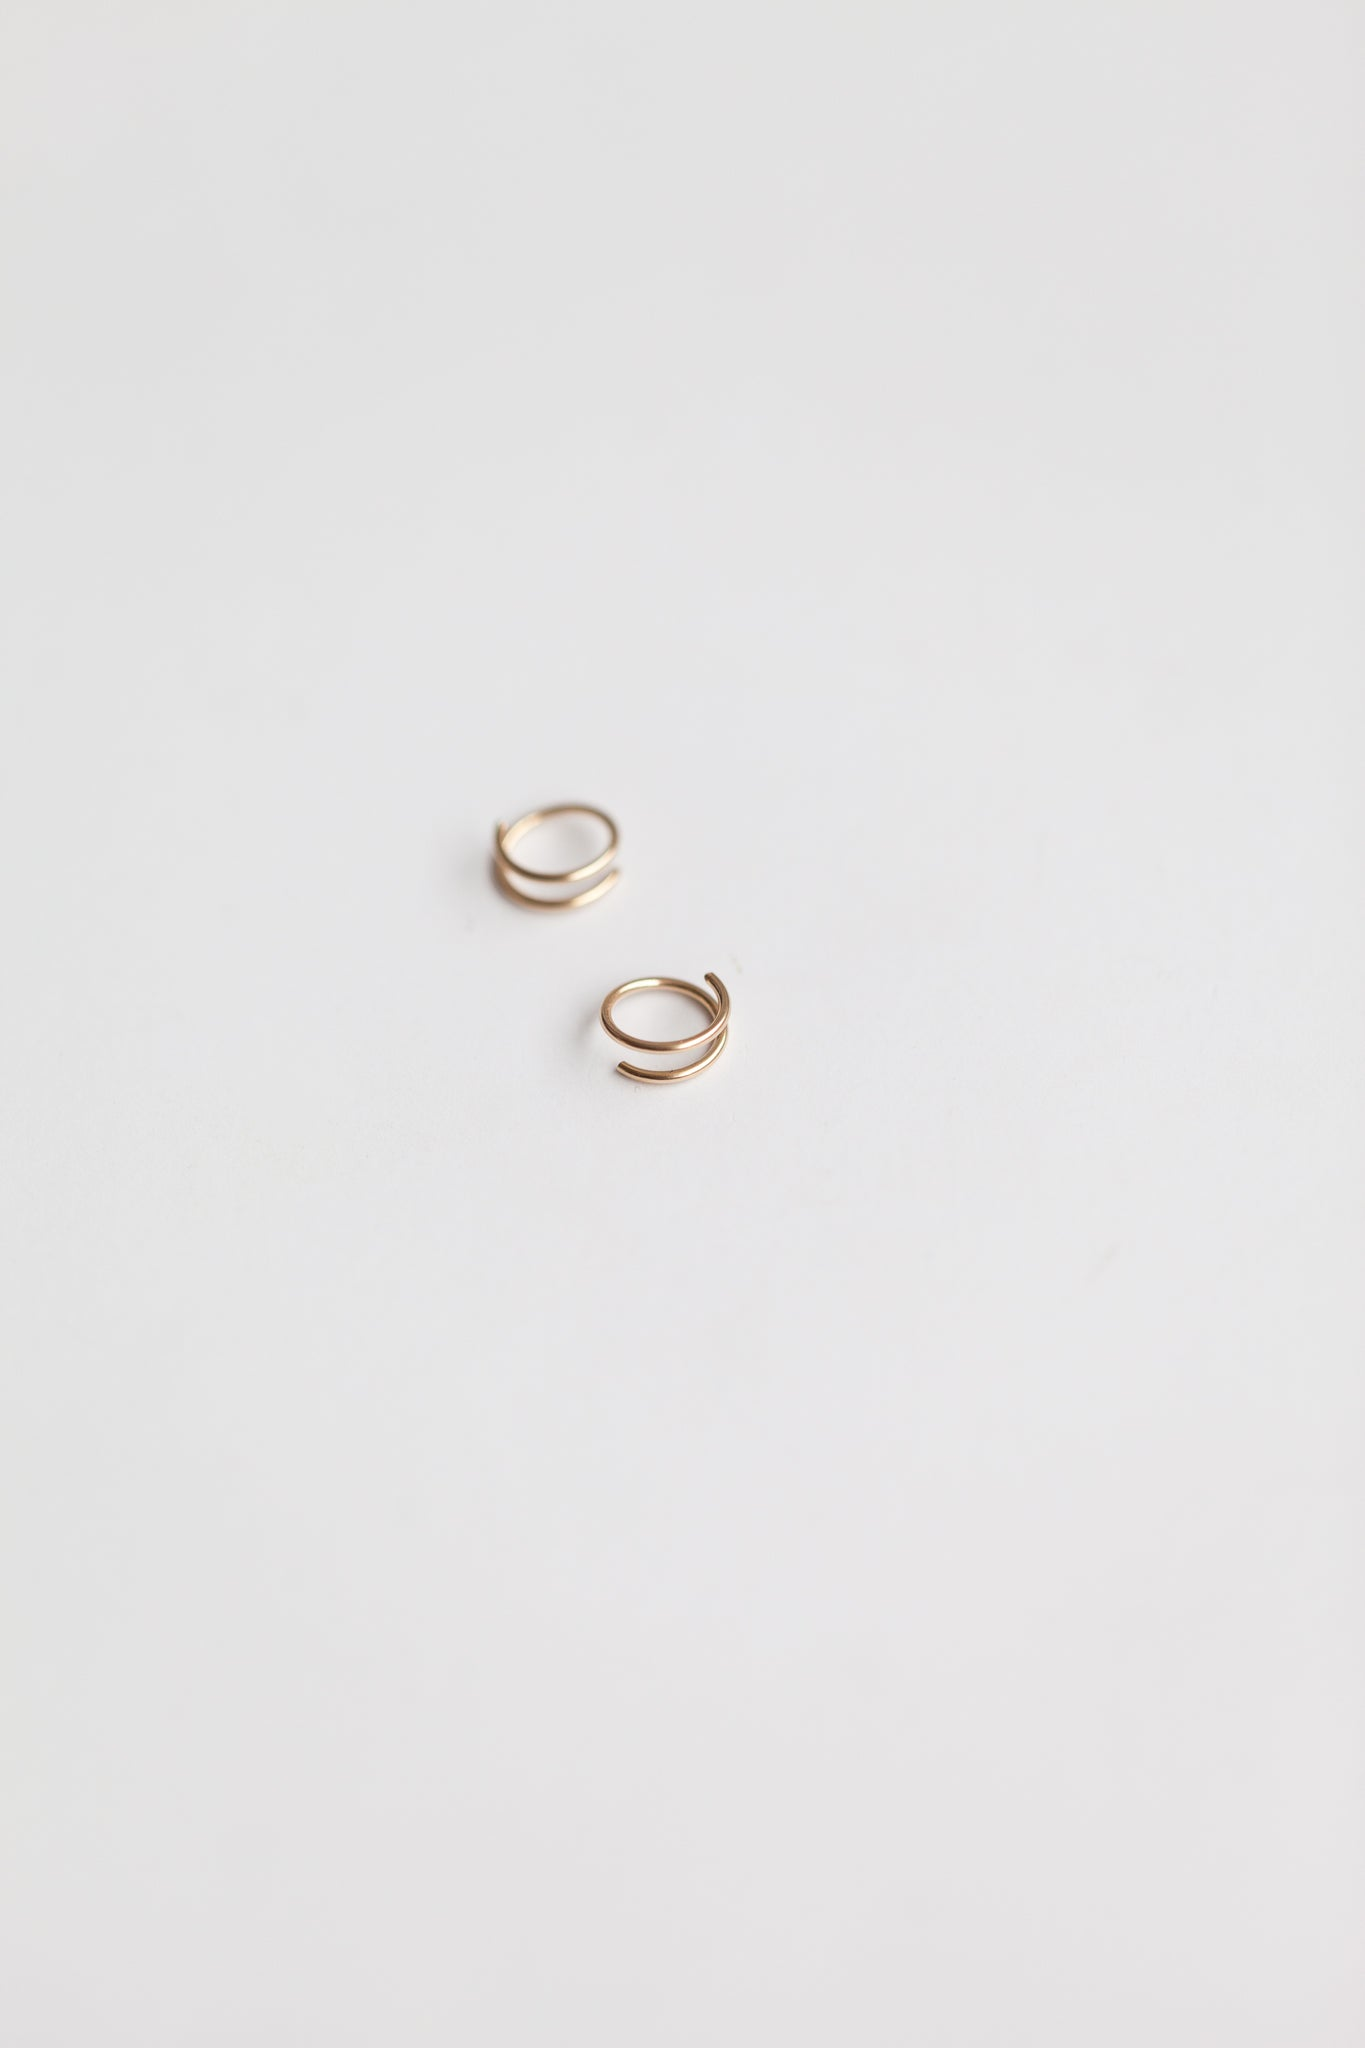 Tiny Twist Earrings 14k Gold Fill